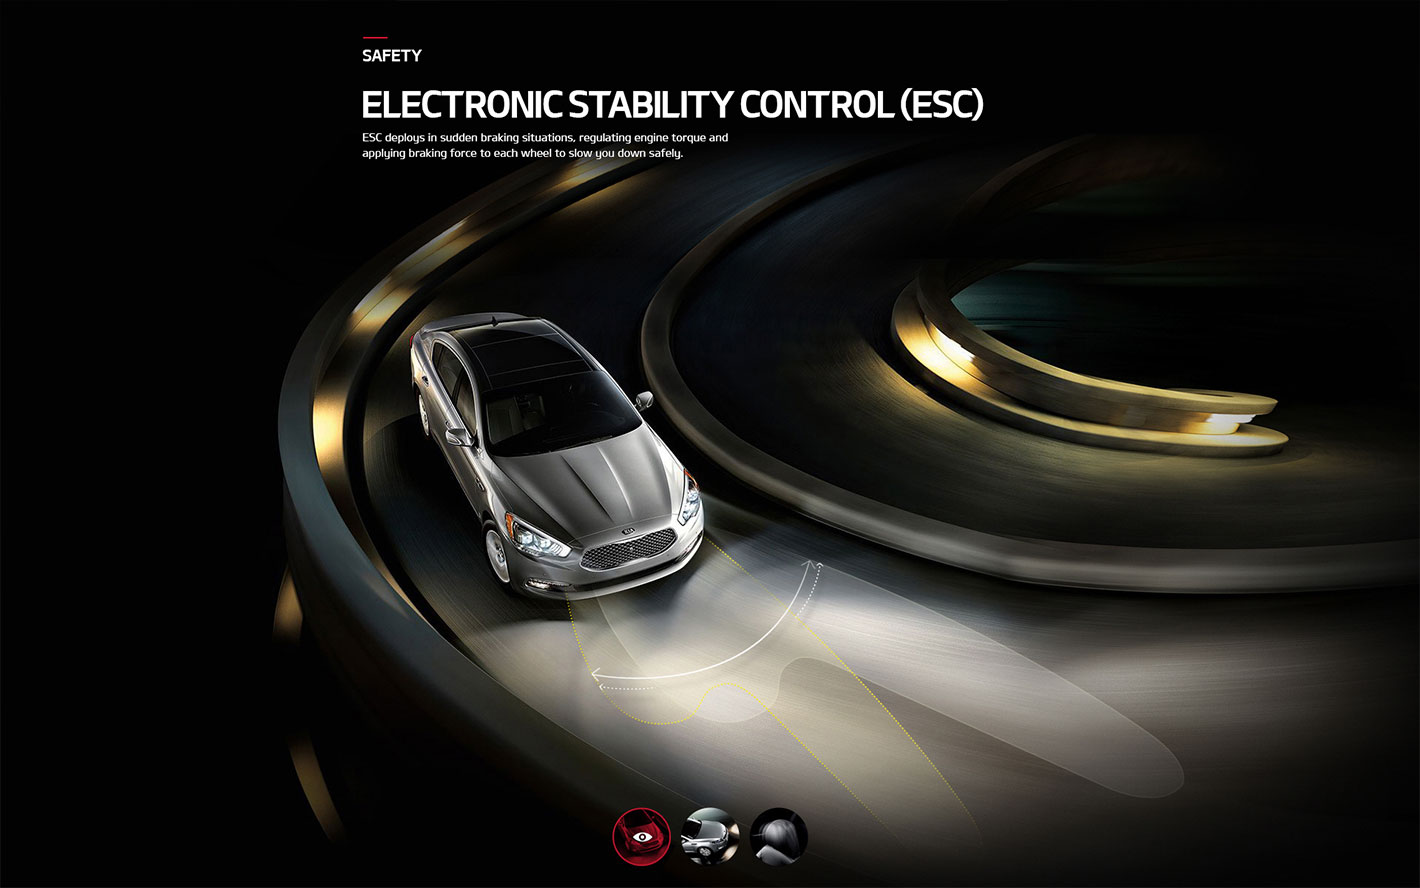 Web design illustrating Kia Motors' Electronic Stability Control (ESC) safety feature